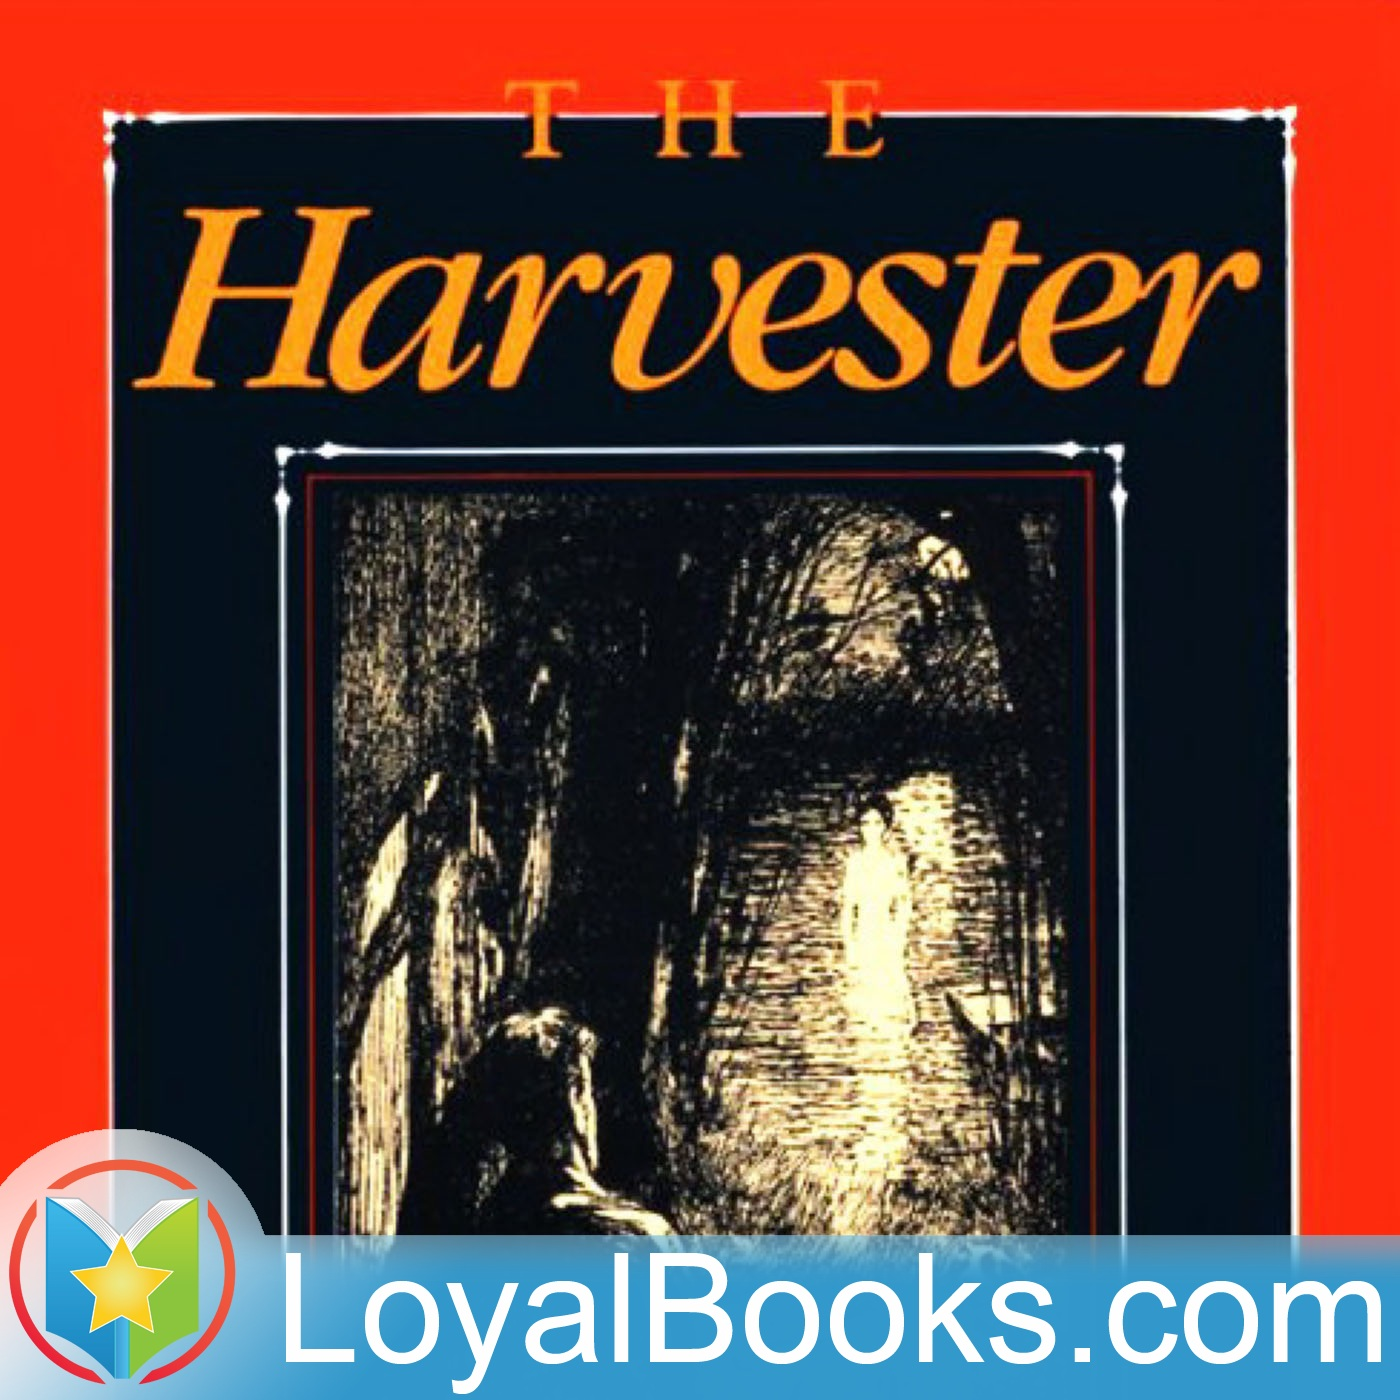 <![CDATA[The Harvester by Gene Stratton-Porter]]>